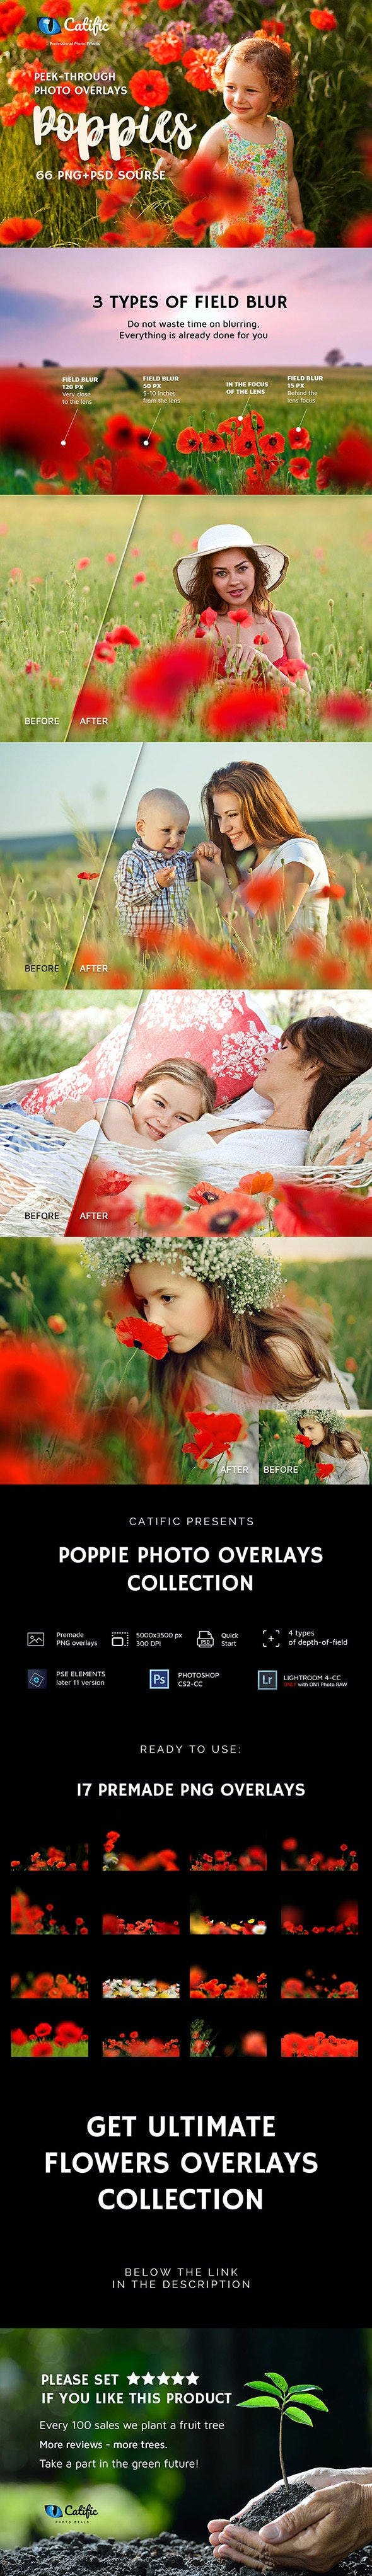 17 Poppie Flowers Photo Overlays - Photo Effects Actions